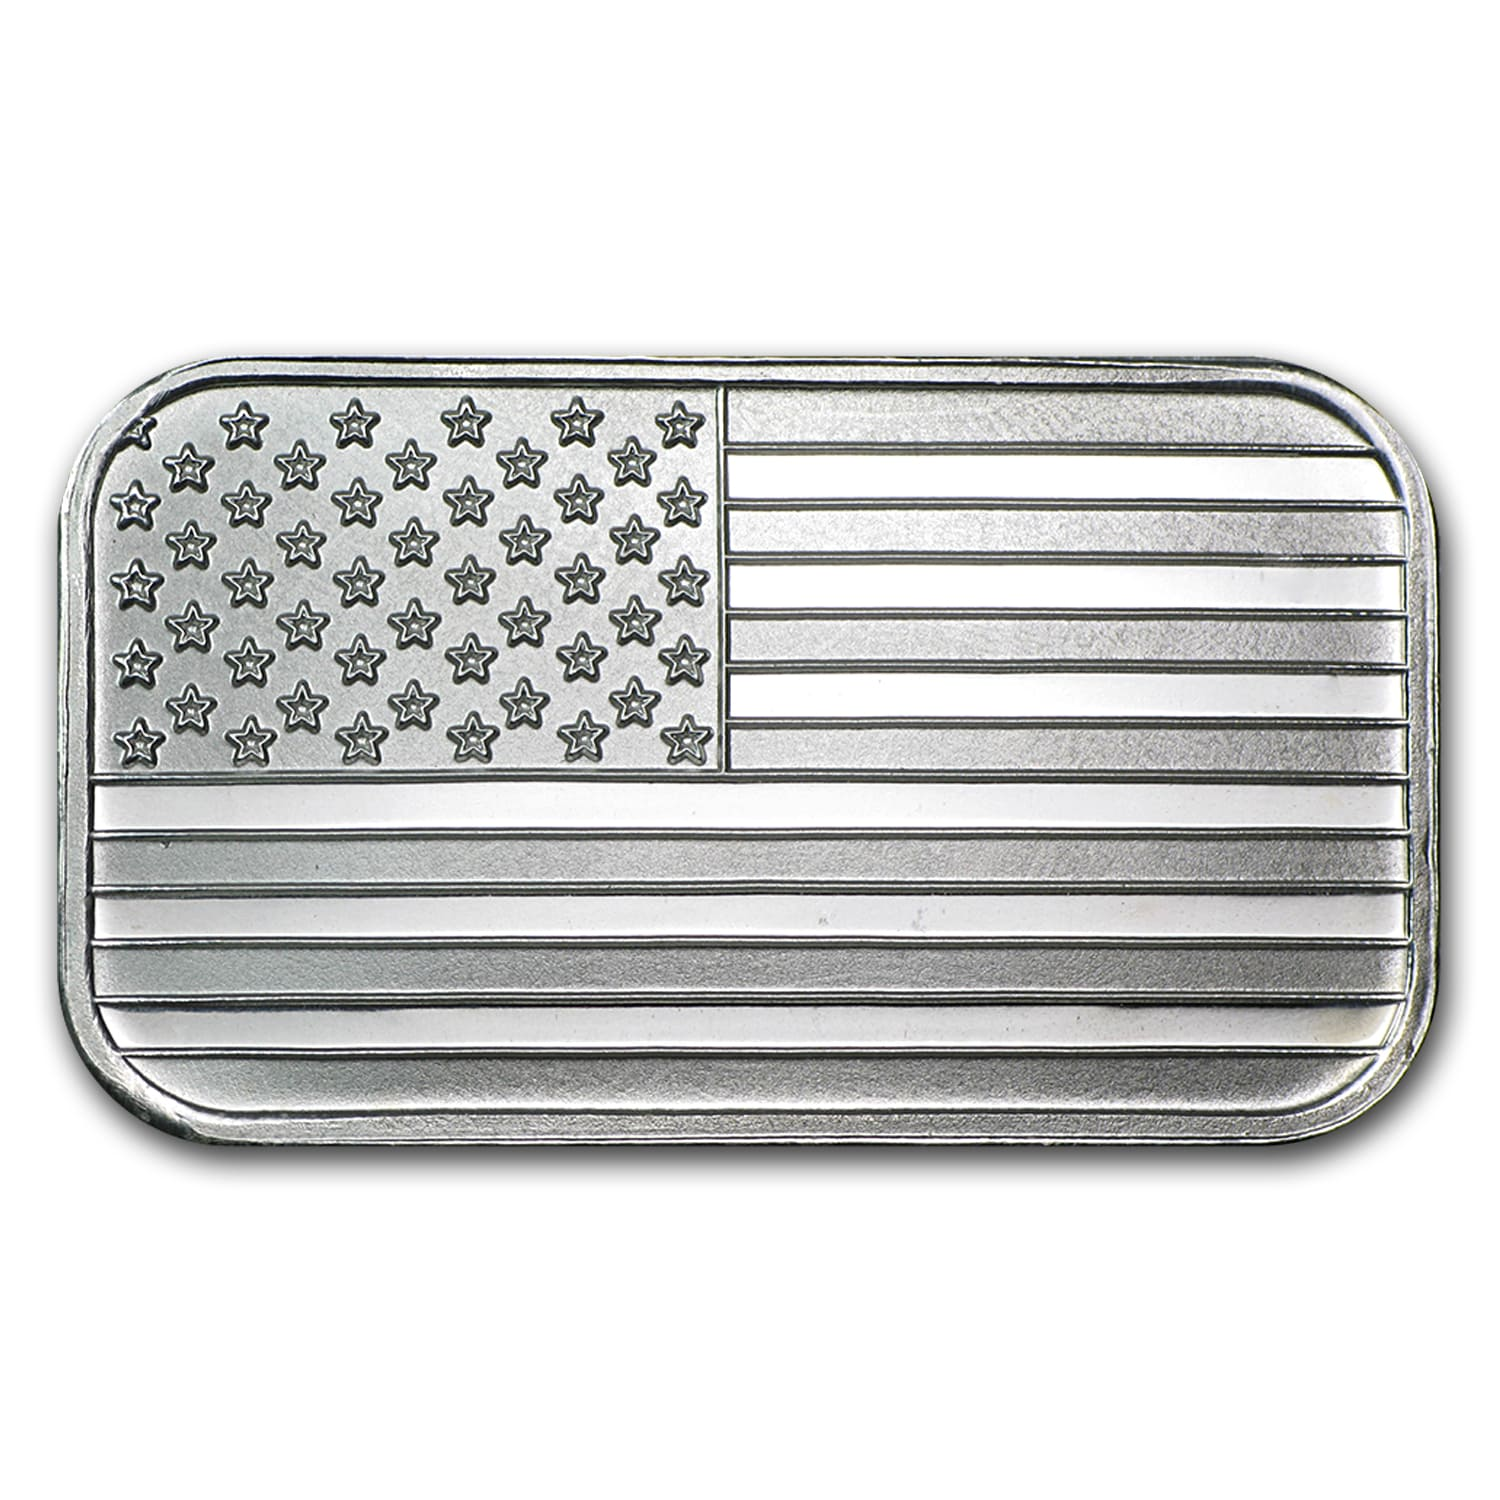 1 oz Silver Bar - American Flag Design